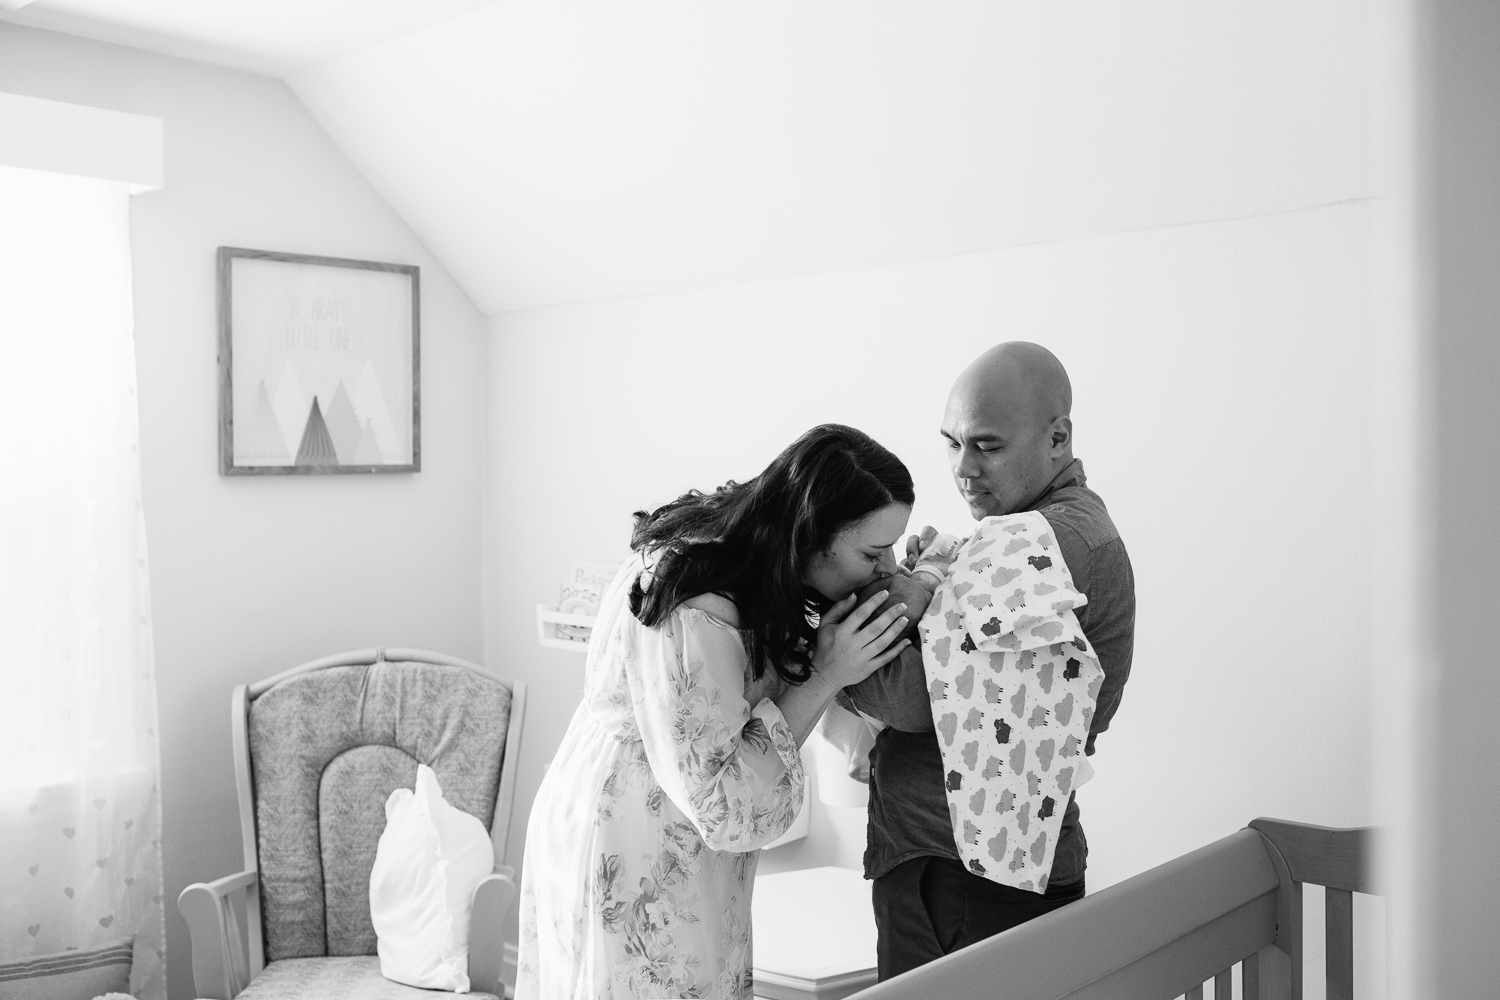 new parents standing in nursery, dad feeding 3 week old baby boy a bottle as mom stands next to them, hand on son's head, kissing him - Stouffville Lifestyle Photography